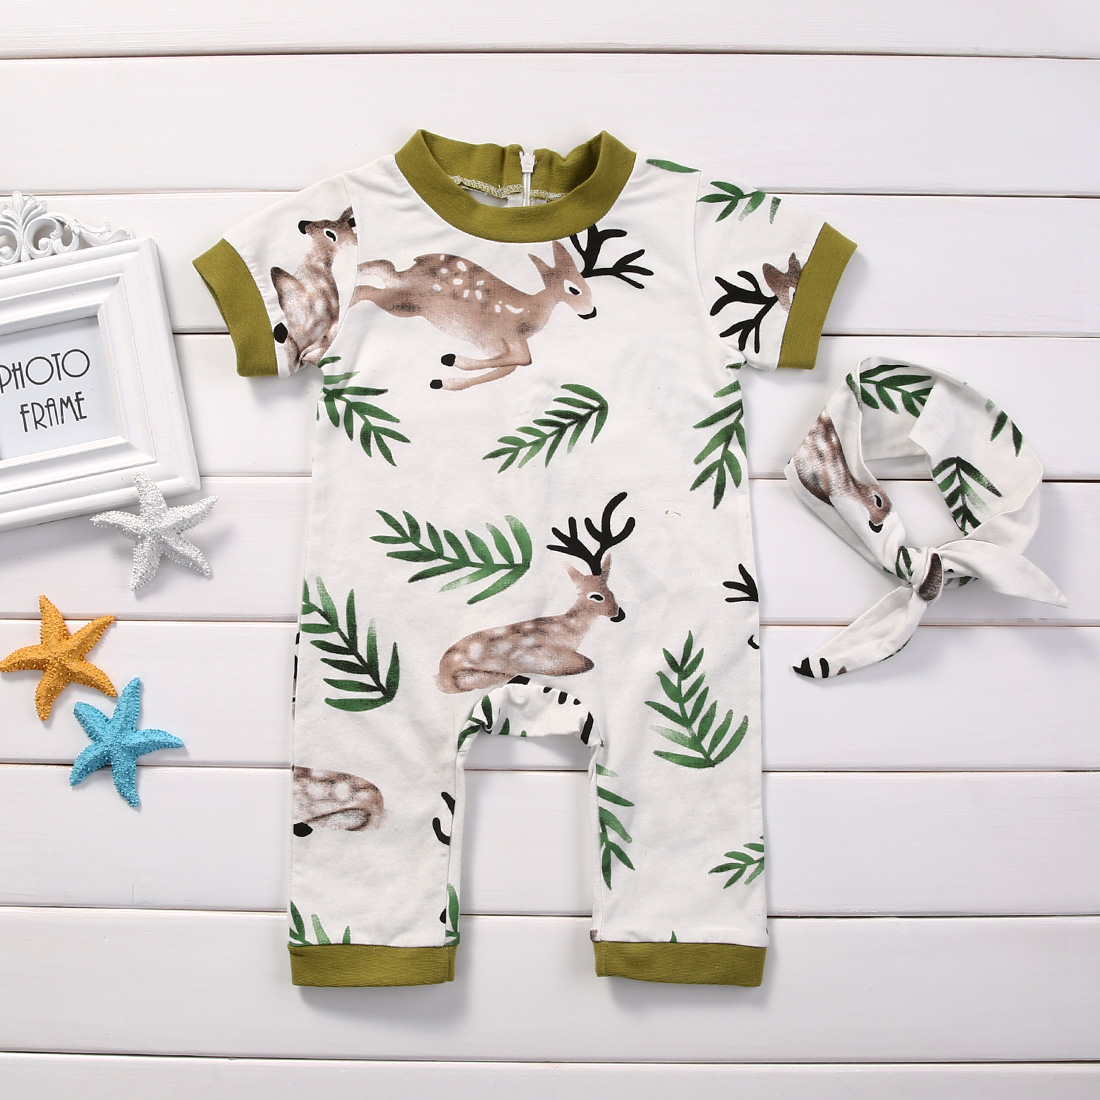 2pcs Baby Set Newborn Infant Baby Girls Boys Clothes Summer Short Sleeve Deer Leaf Back Zipper Jumpsuit Romper+Headband Baby Set серебряное колье ювелирное изделие np1521